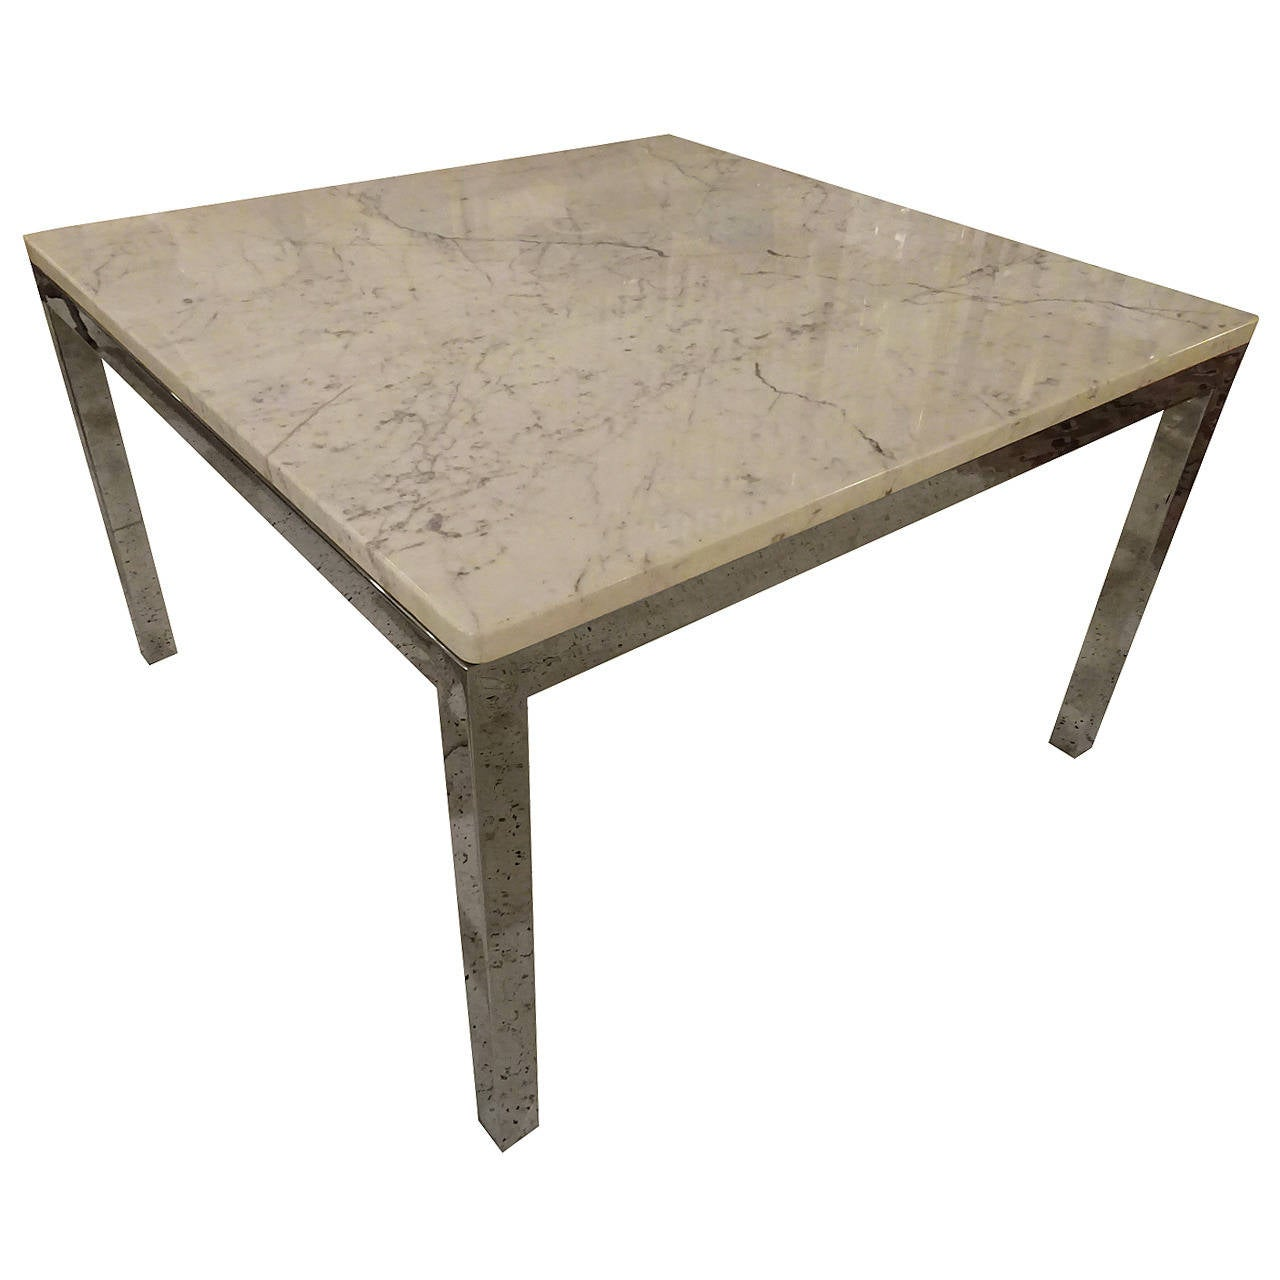 Florence knoll style coffee table at 1stdibs Florence knoll coffee table